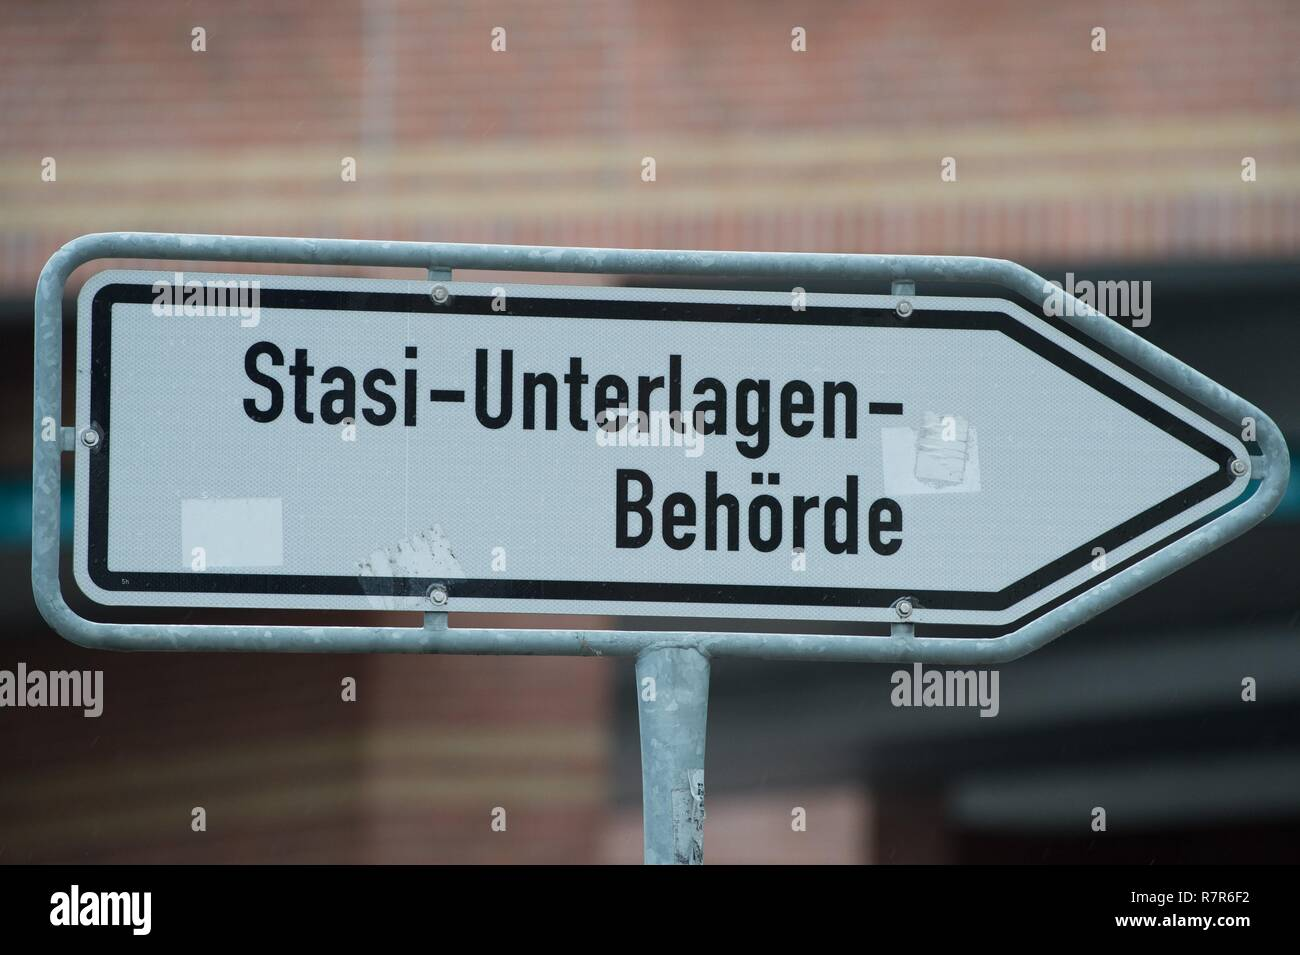 Dresden, Germany. 11th Dec, 2018. A sign with the inscription 'Stasi-Unterlagen-Behörde' stands at a crossroads. The Stasi ID card of Russia's president and then KGB officer V. Putin was discovered in the authority. (to dpa 'Stasi identity card of Putin found in Dresden' from 11.12.2018) Credit: Sebastian Kahnert/dpa-Zentralbild/dpa/Alamy Live News - Stock Image